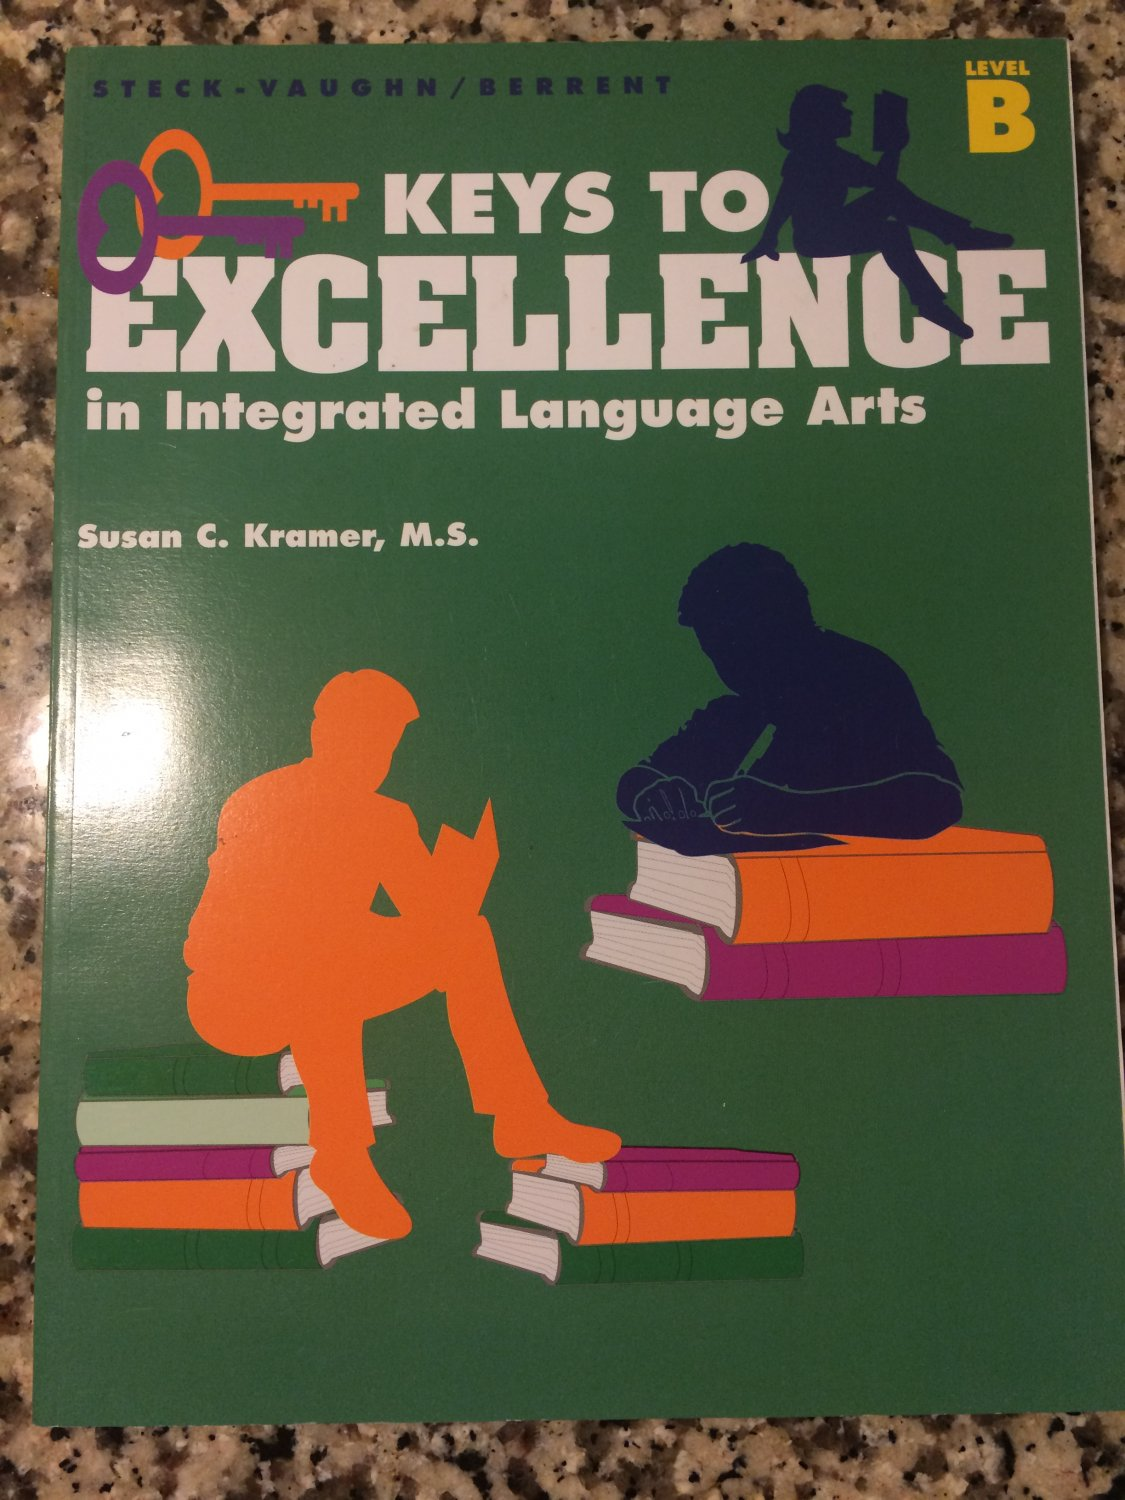 Keys to Excellence in Integrated Language Arts: Level BJan 1, 1998 by Steck-Vaughn Company